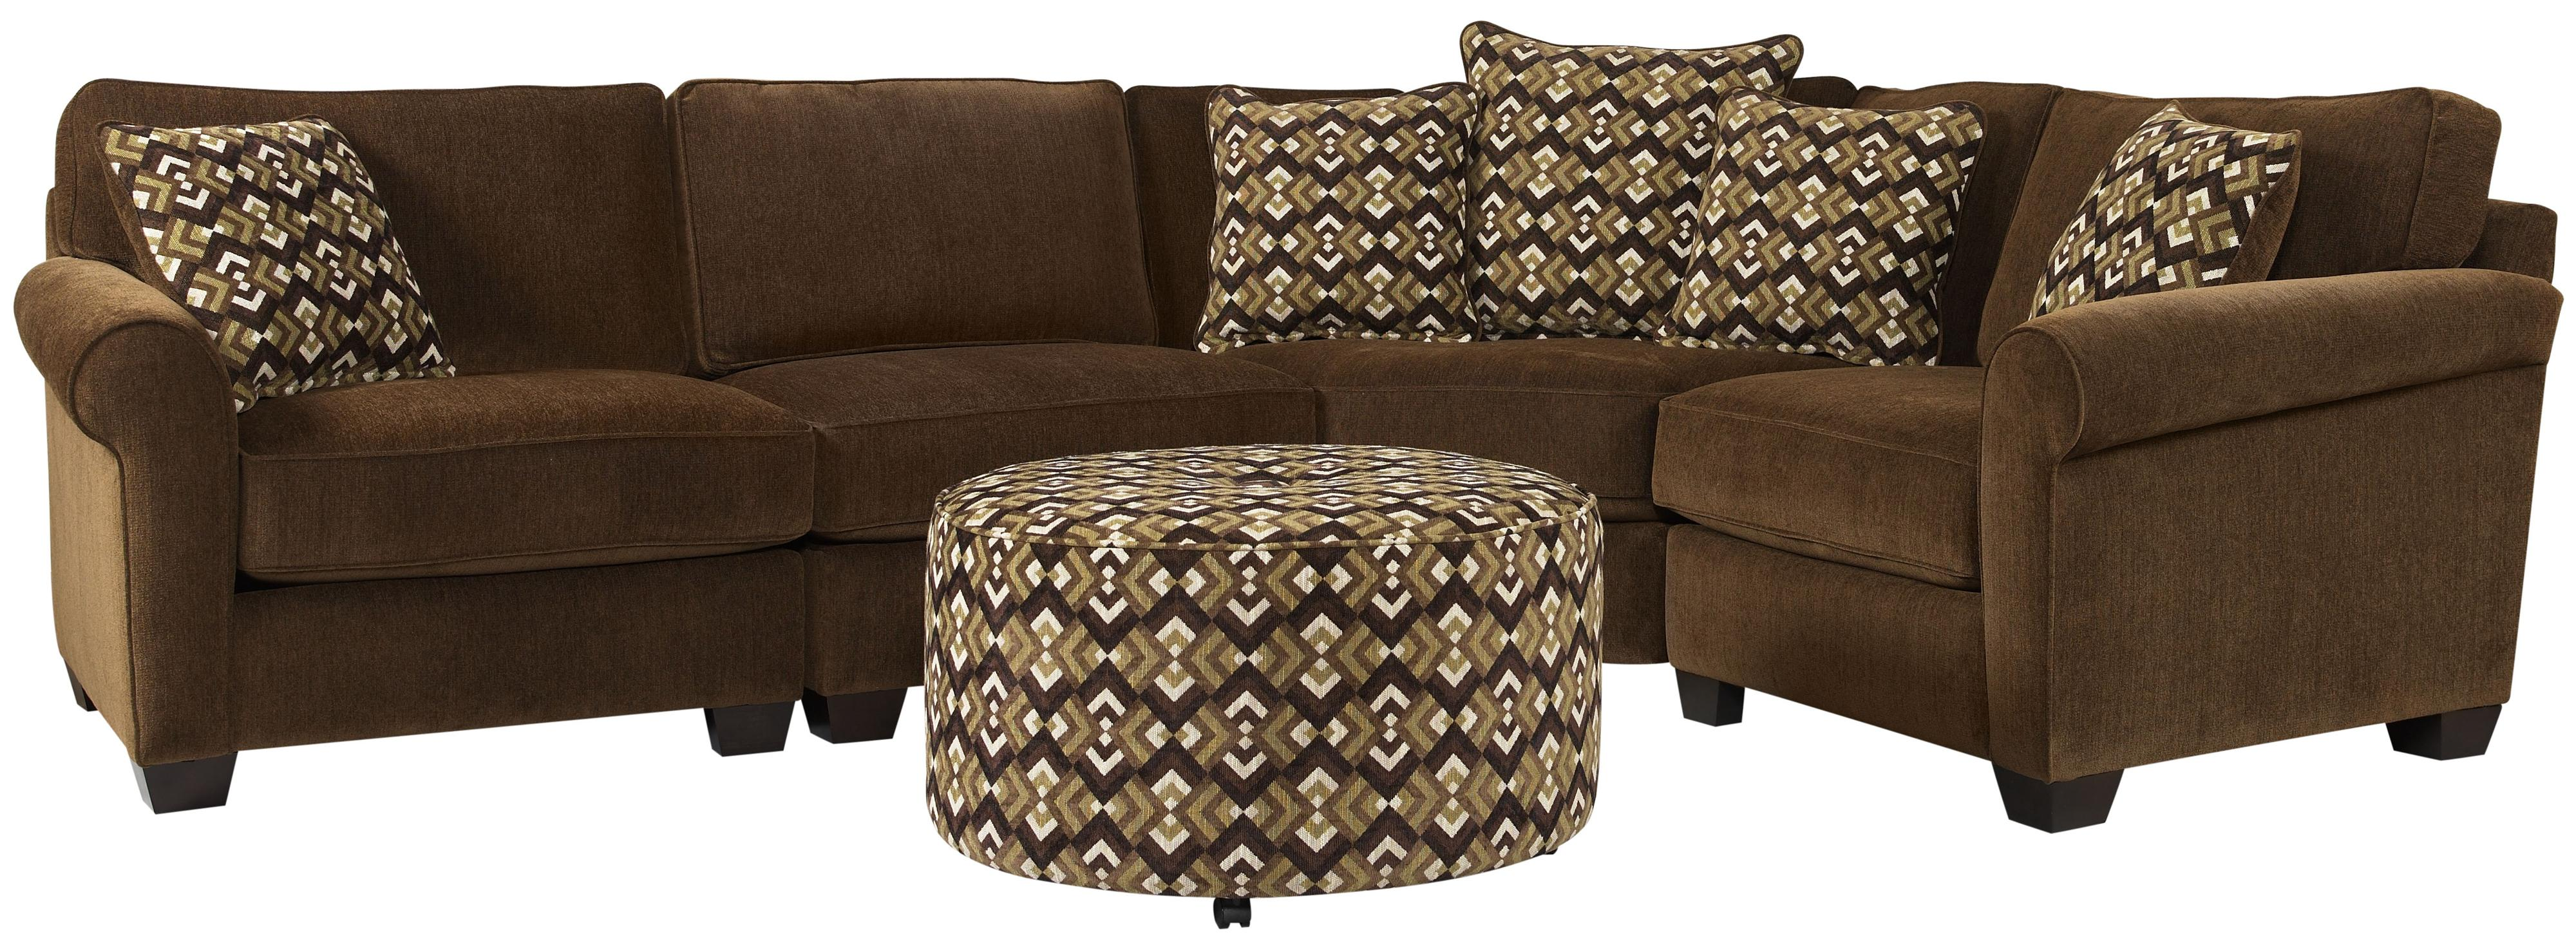 jonathan louis benjamin sectional sofa amazon sectionals with wedge rooms